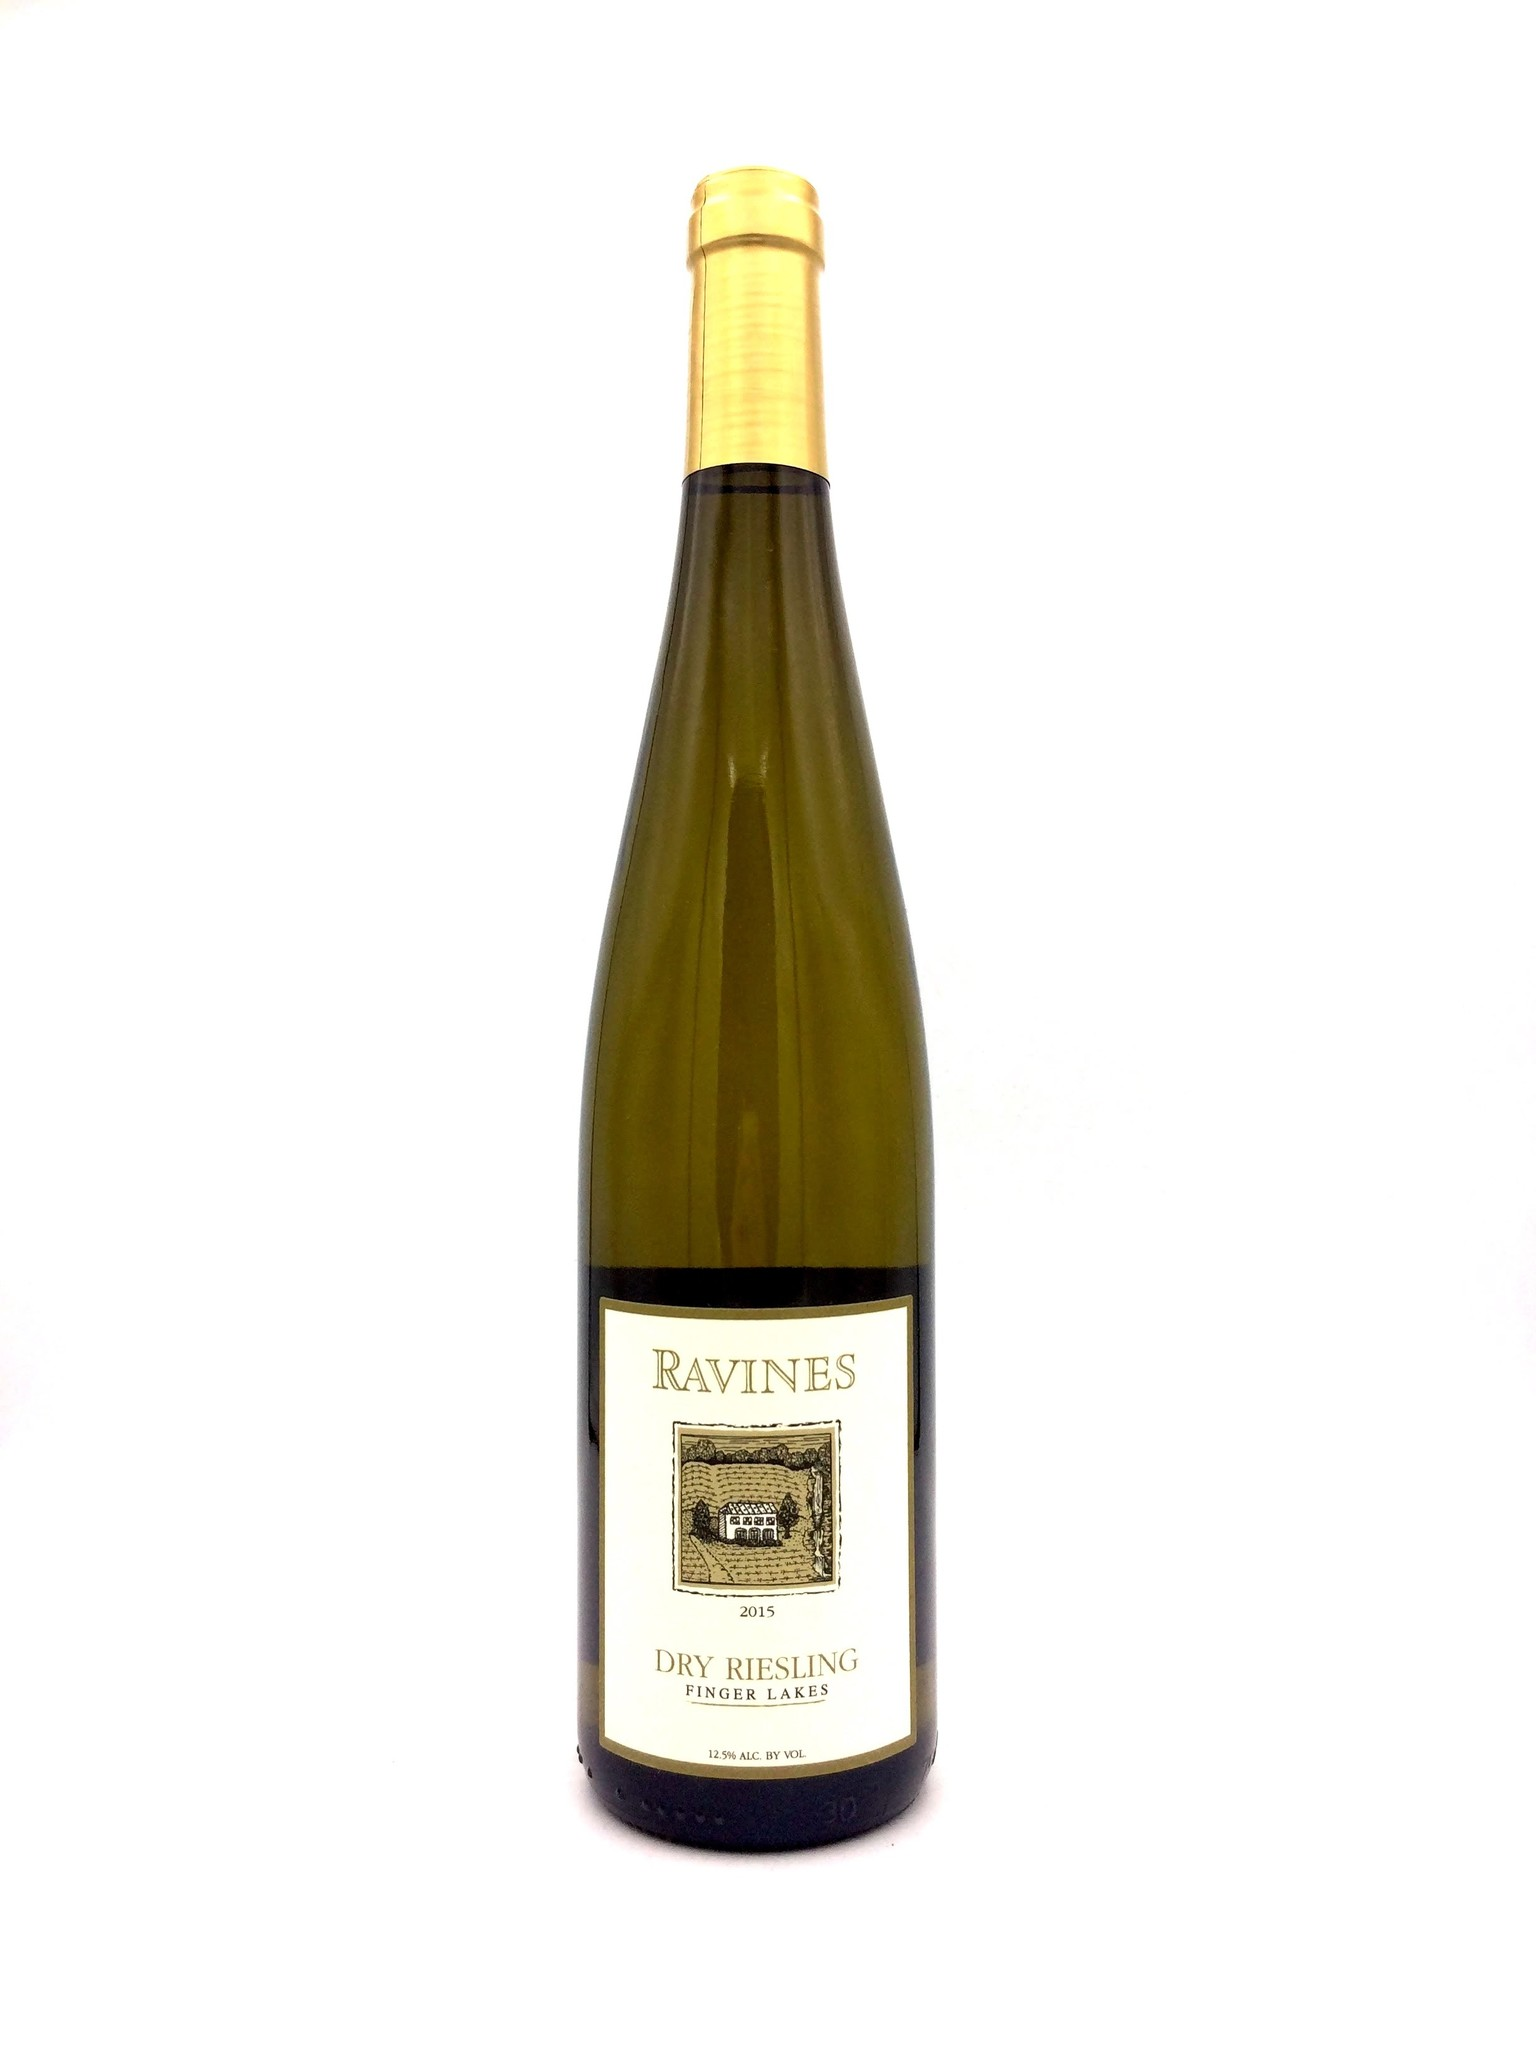 Finger Lakes Dry Riesling 2017 Ravines